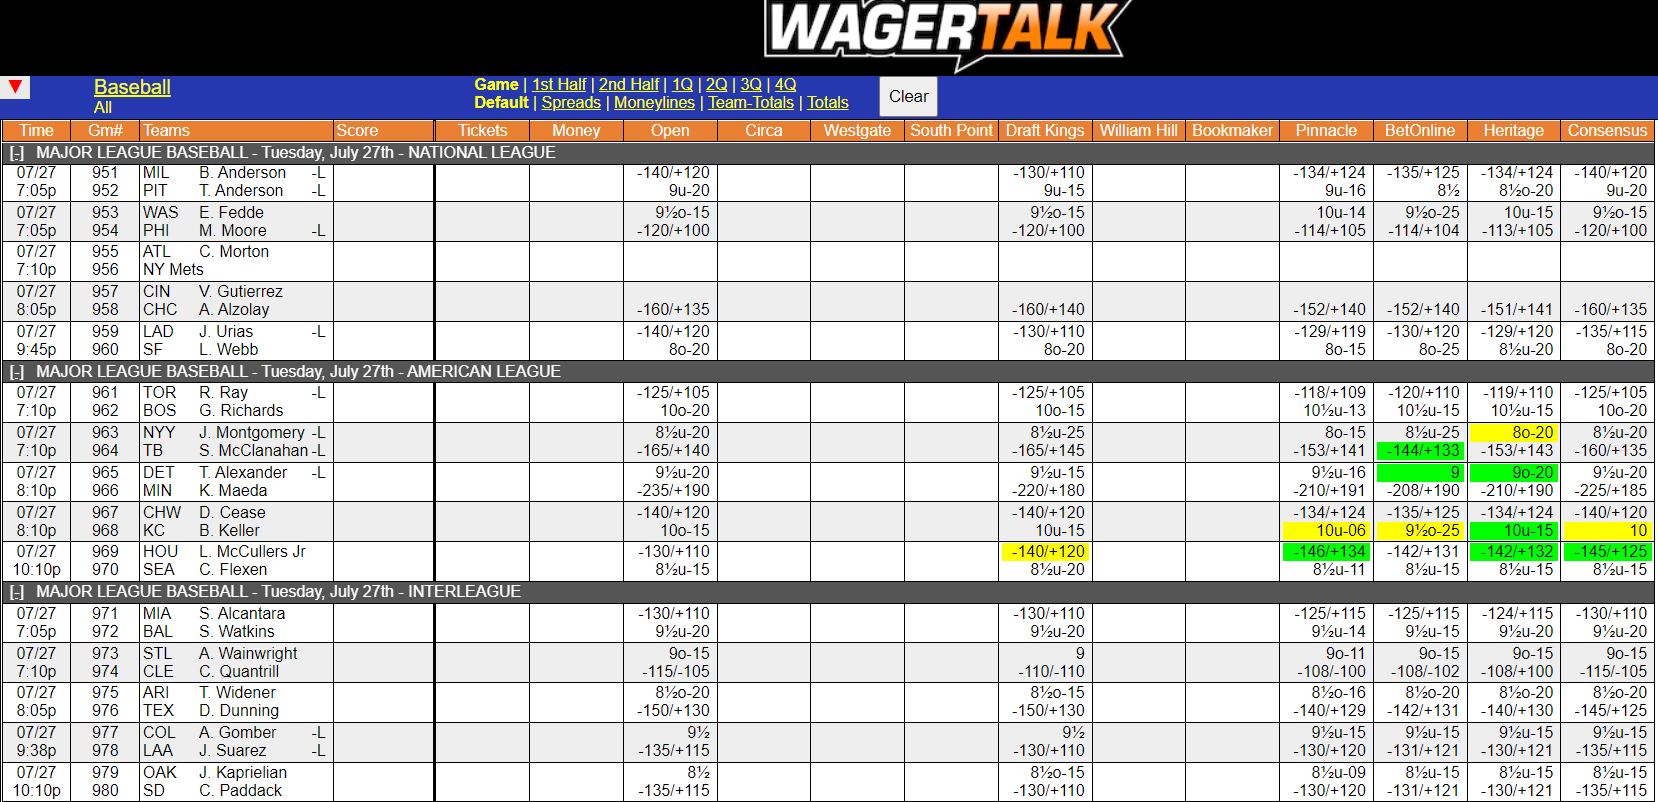 WagerTalk's live odds page